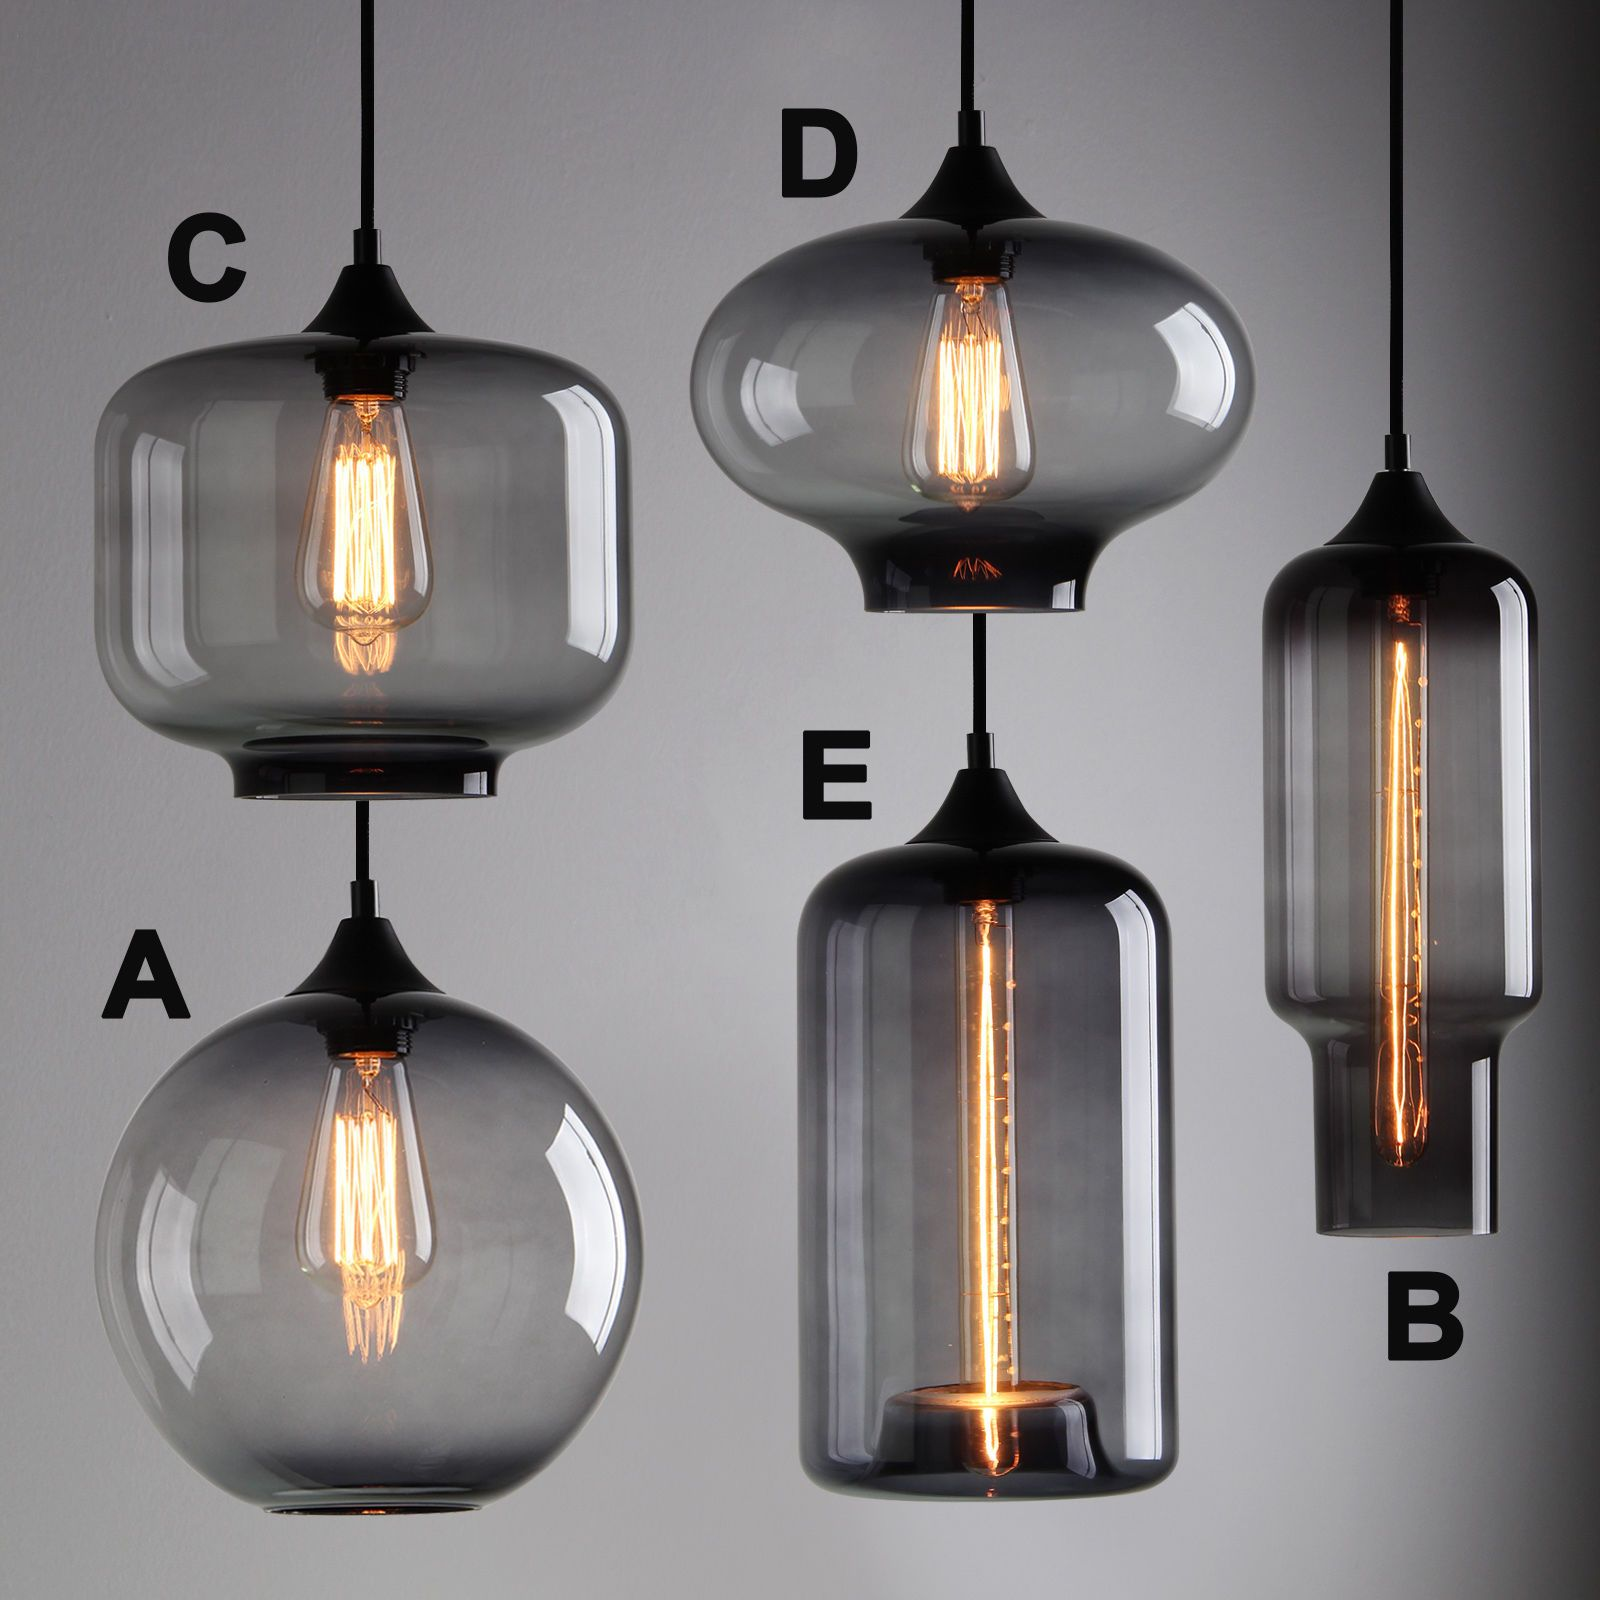 MODERN INDUSTRIAL SMOKY GREY GLASS SHADE LOFT CAFE PENDANT LIGHT CEILING LAMP